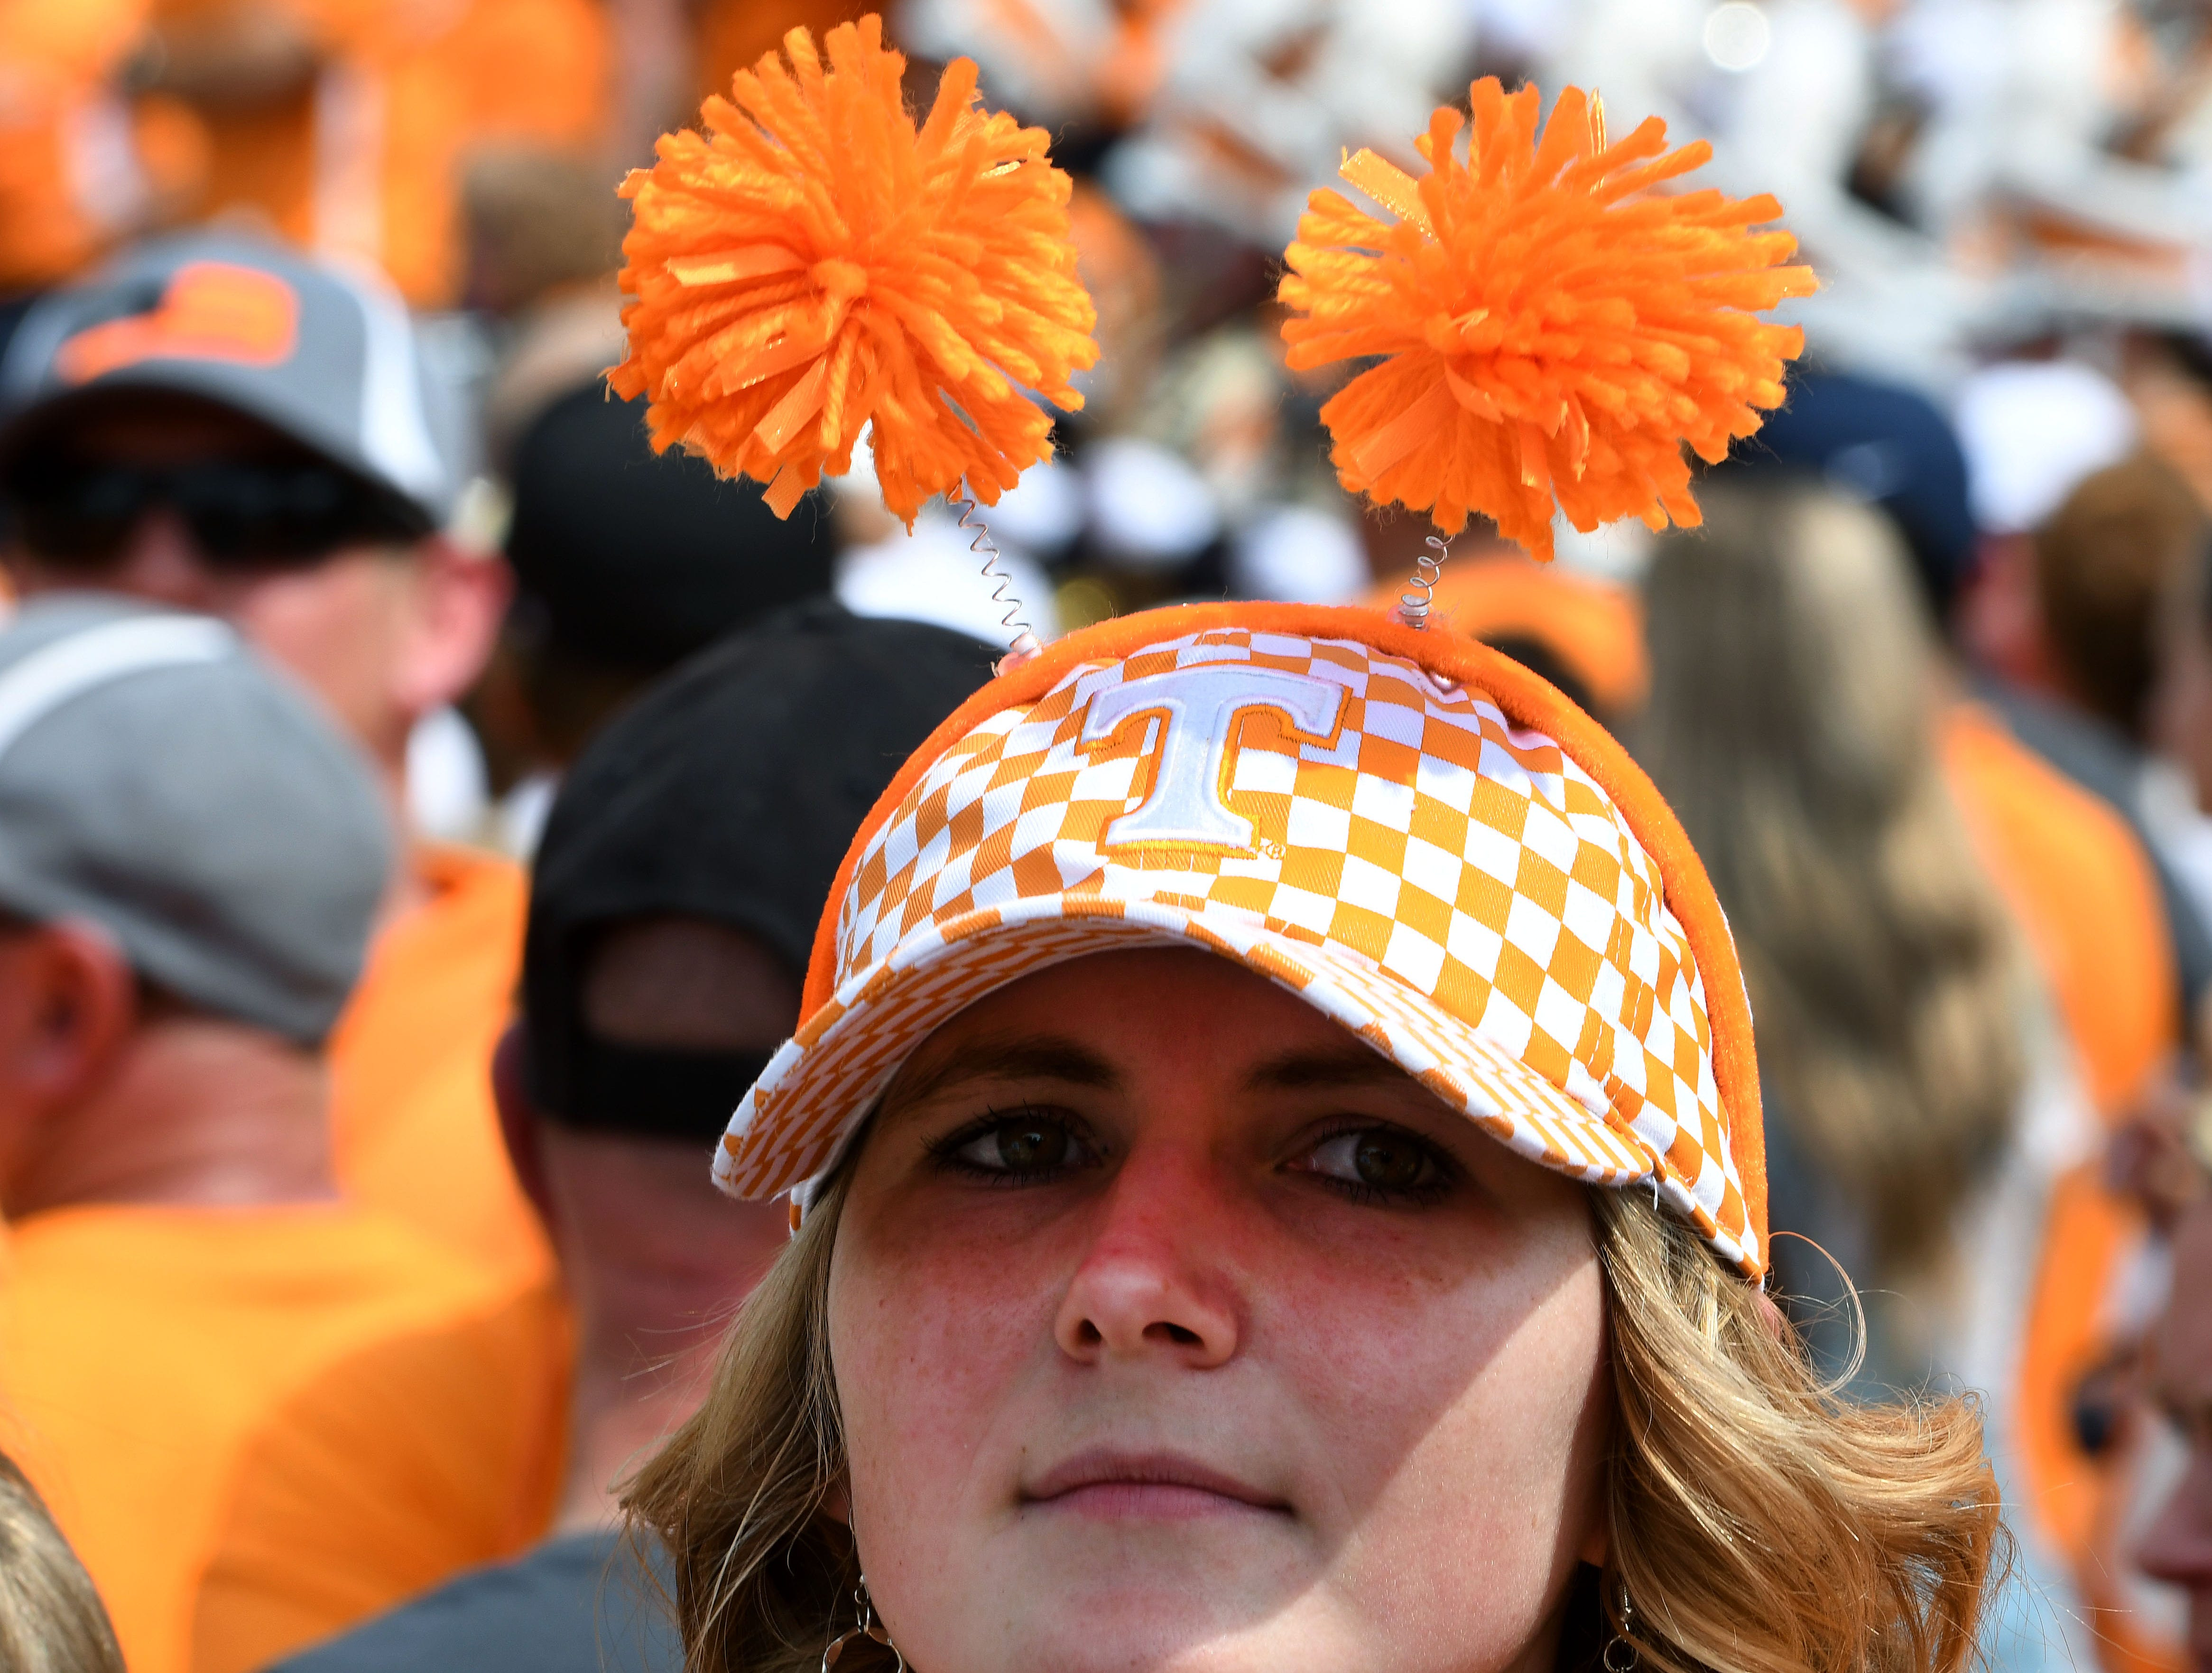 Tennessee fan during pre-game activities before the game against East Tennessee State Saturday, September 8, 2018 at Neyland Stadium in Knoxville, Tenn.